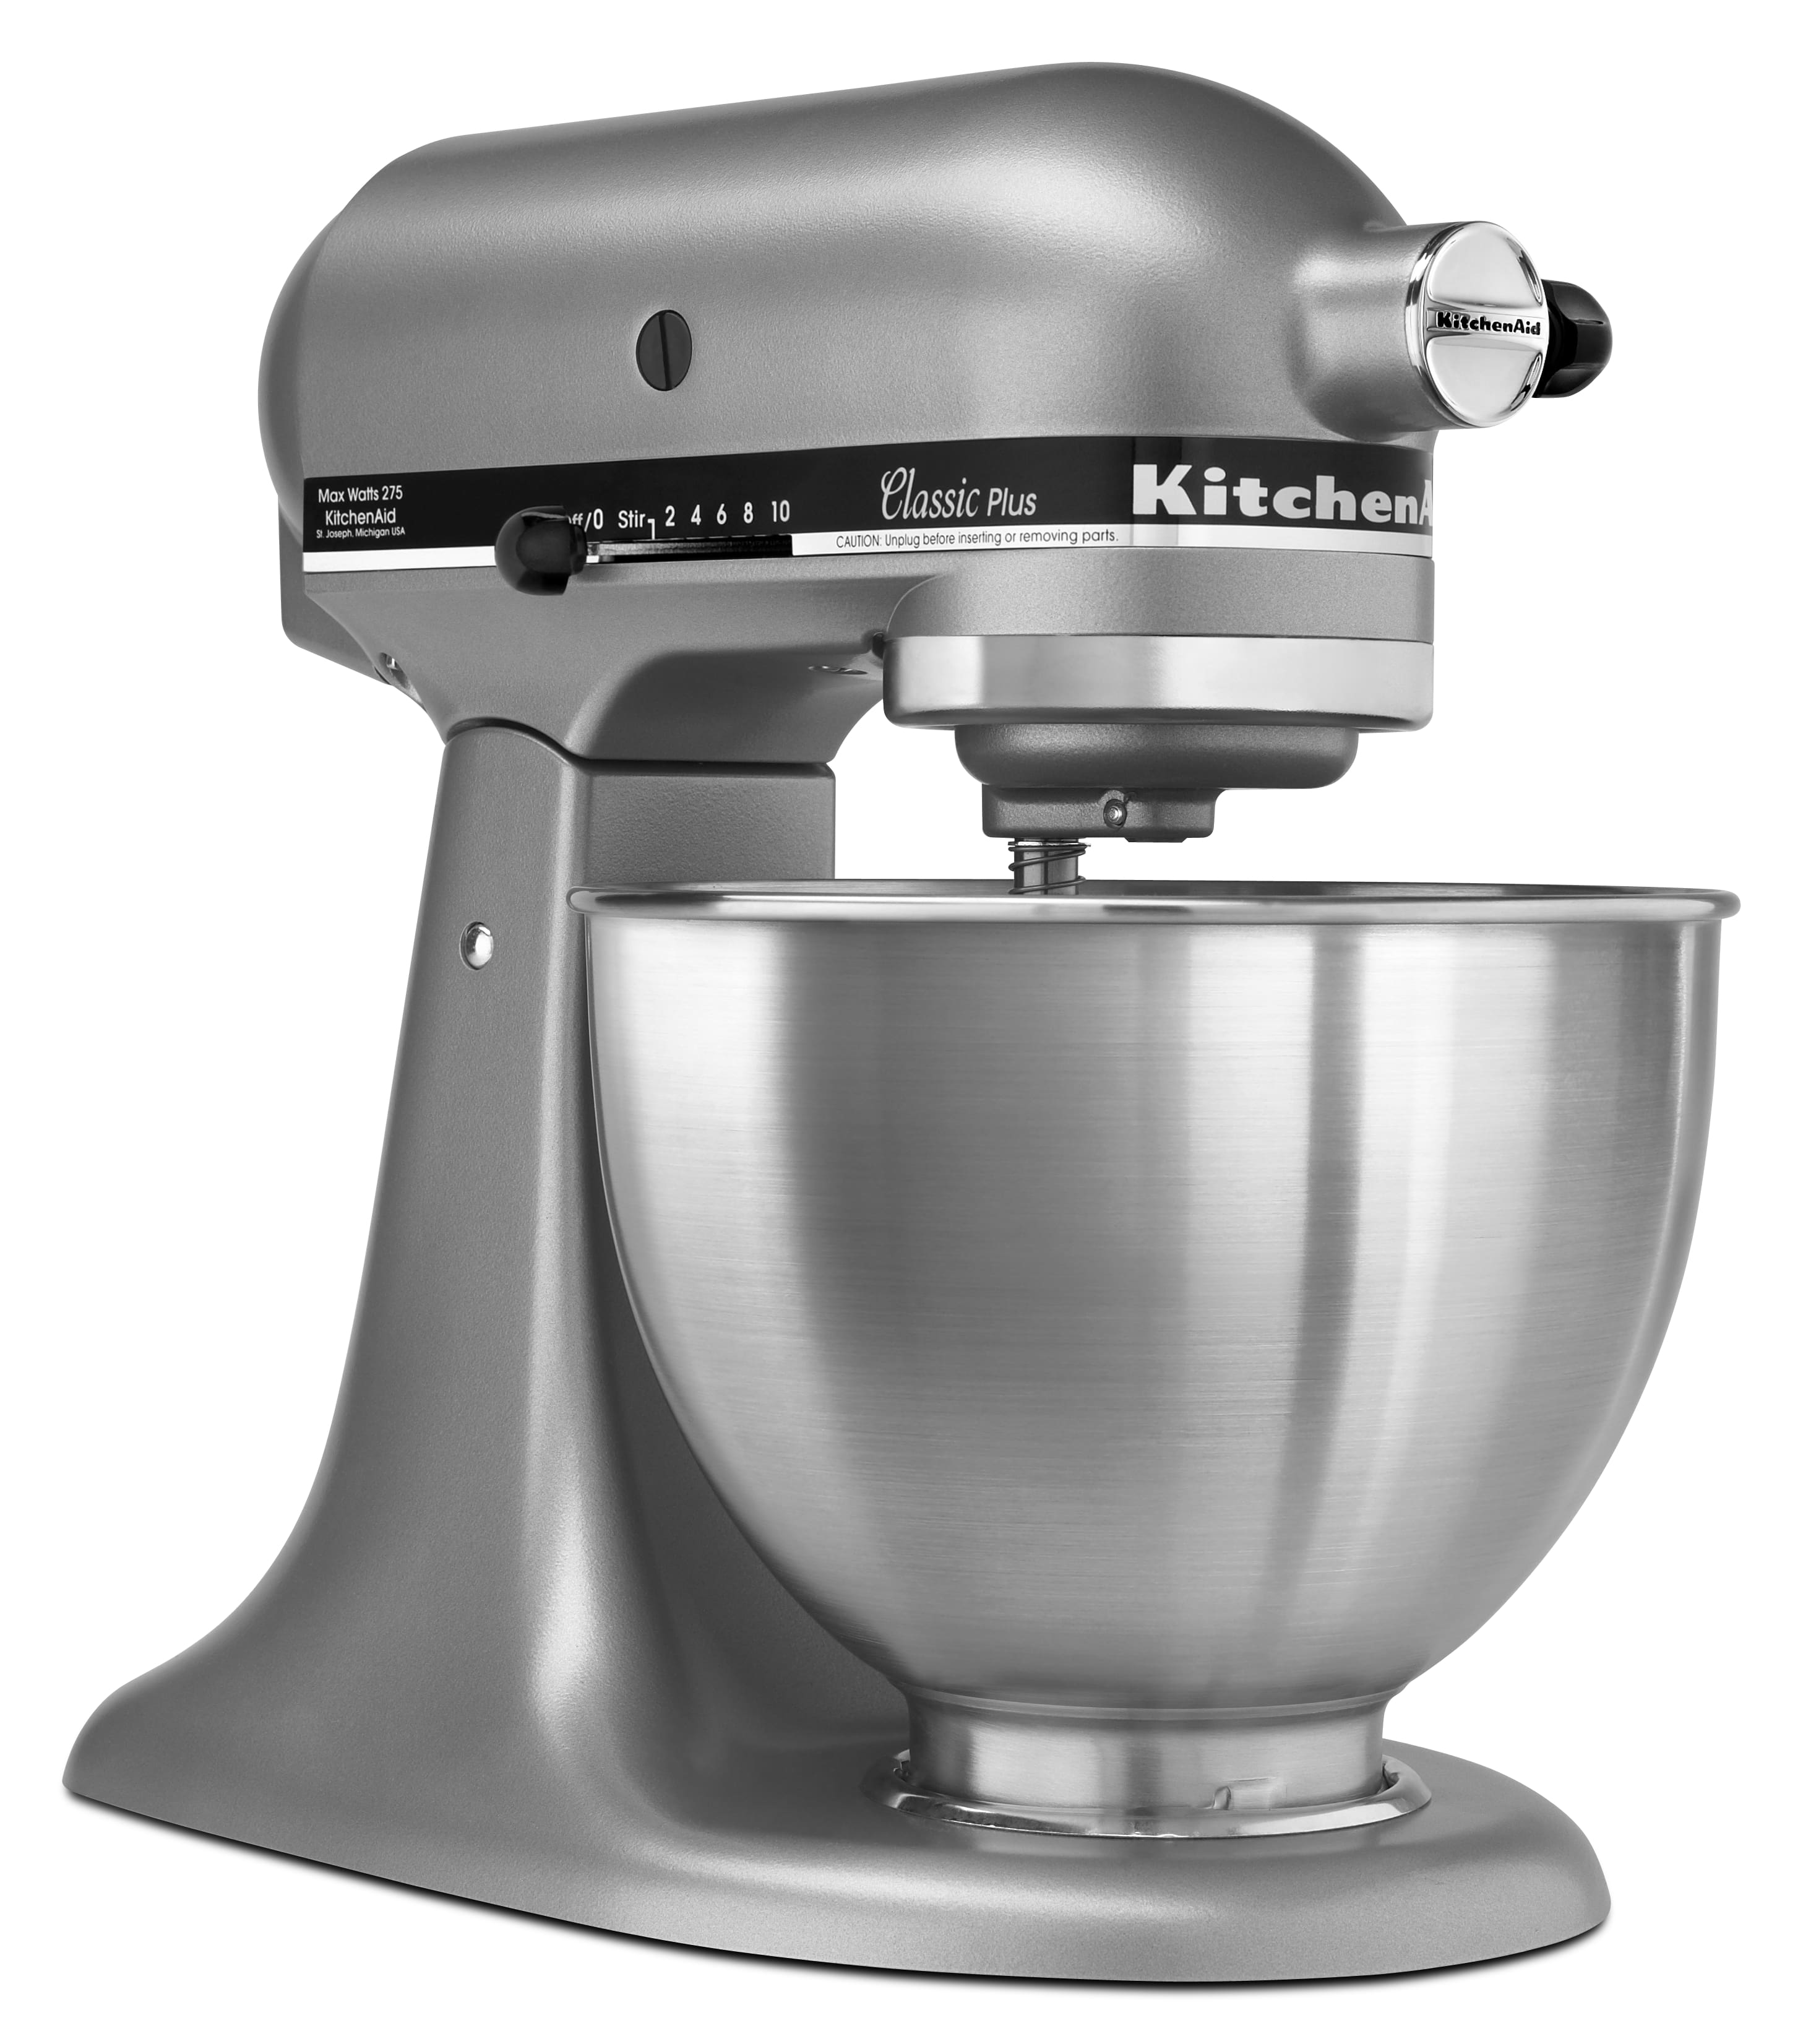 NEW-KitchenAid-Classic-Plus-Series-4-5-Quart-Tilt-Head-Stand-Mixer-KSM75 thumbnail 11